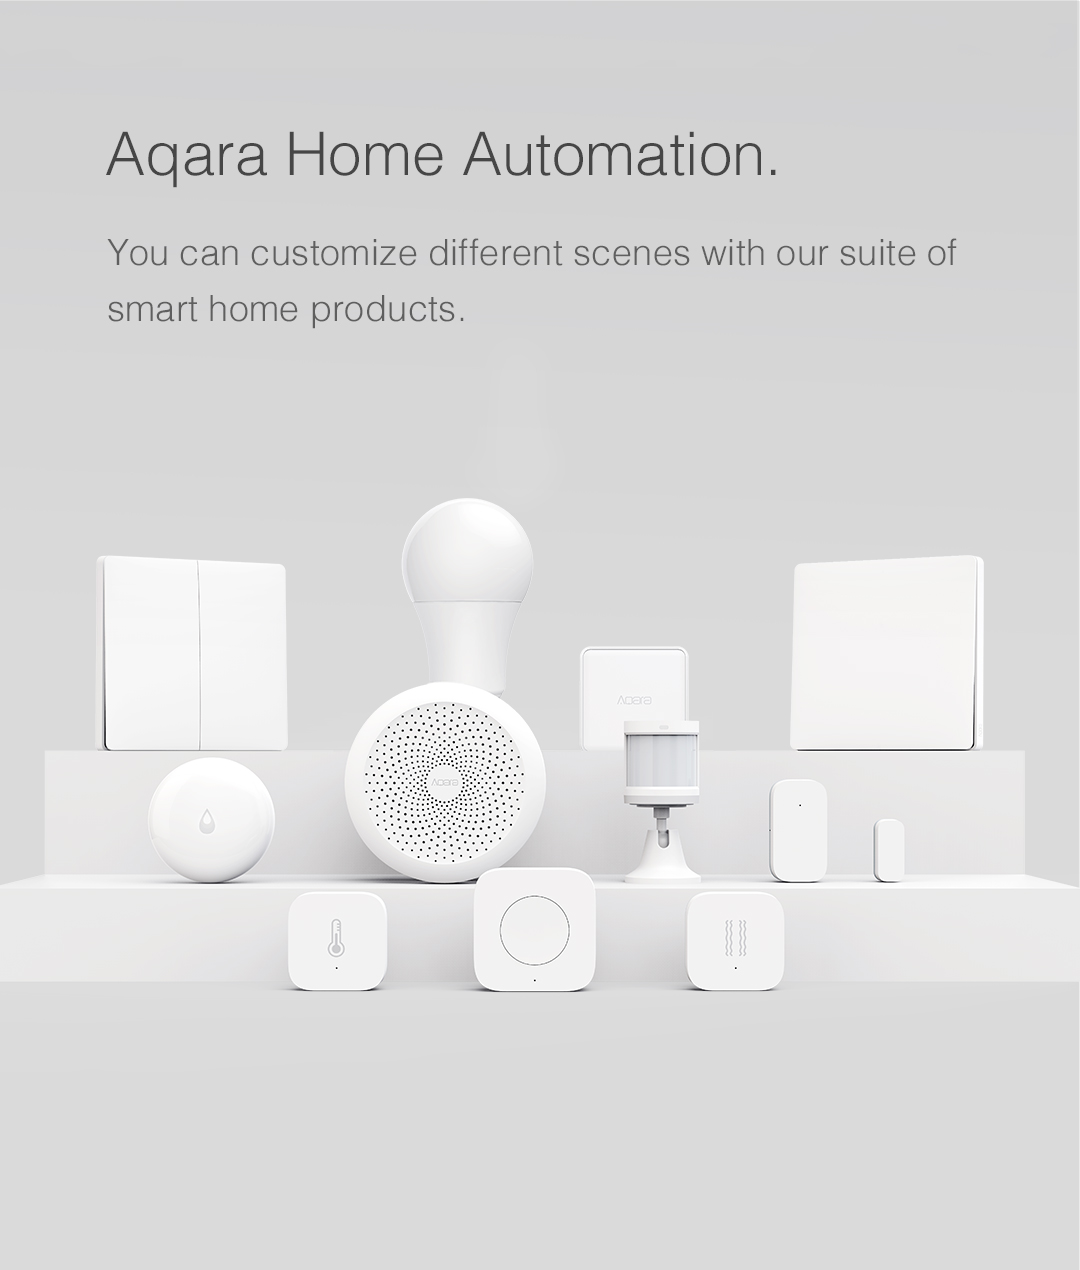 Full range of smart home devices from Aqara